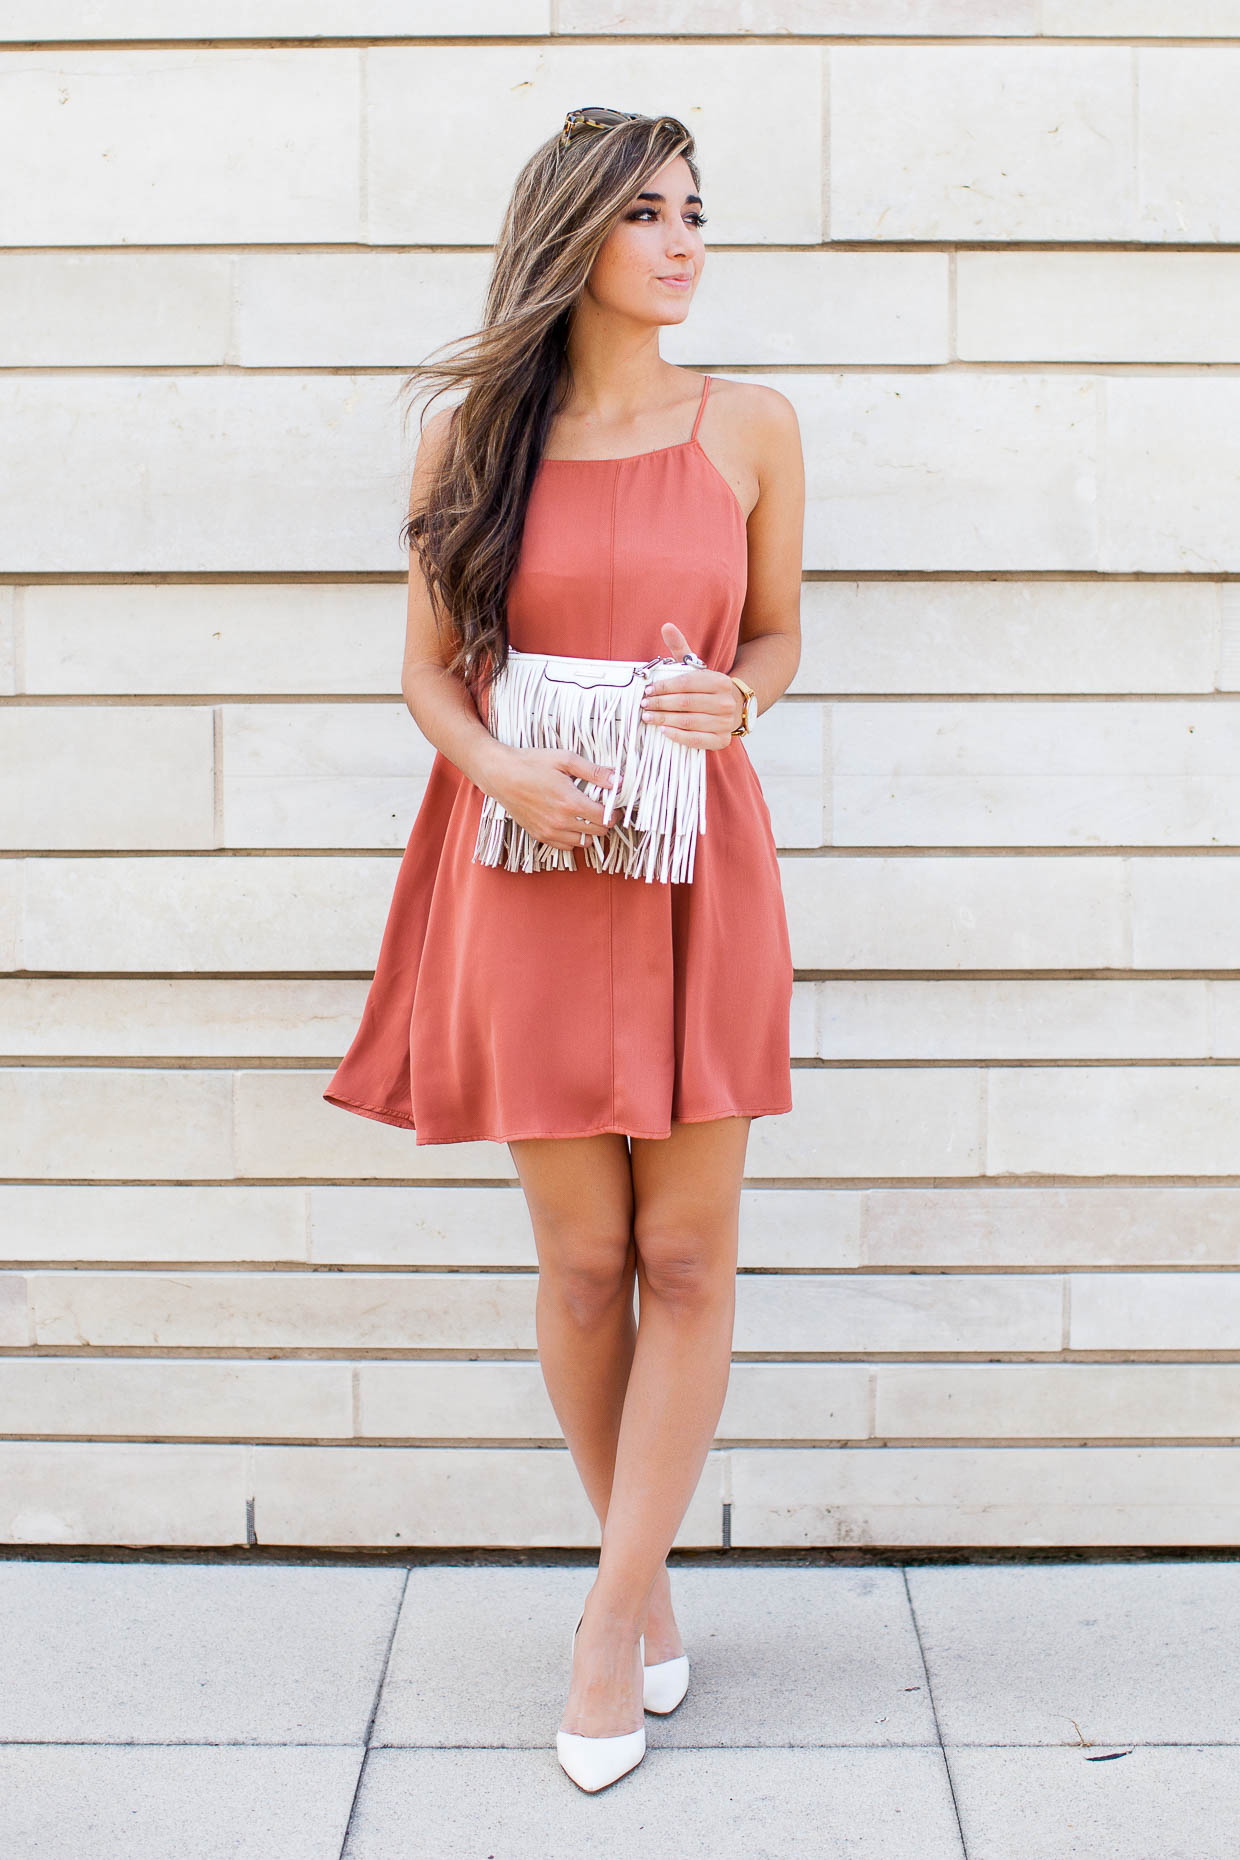 Jessi is a picture in coral, rocking this gorgeously femme mini dress with white sandals and a matching tassled handbag. Perfect for warm spring evenings, we recommend this outfit with either flats or heels! Dress: Nordstrom.